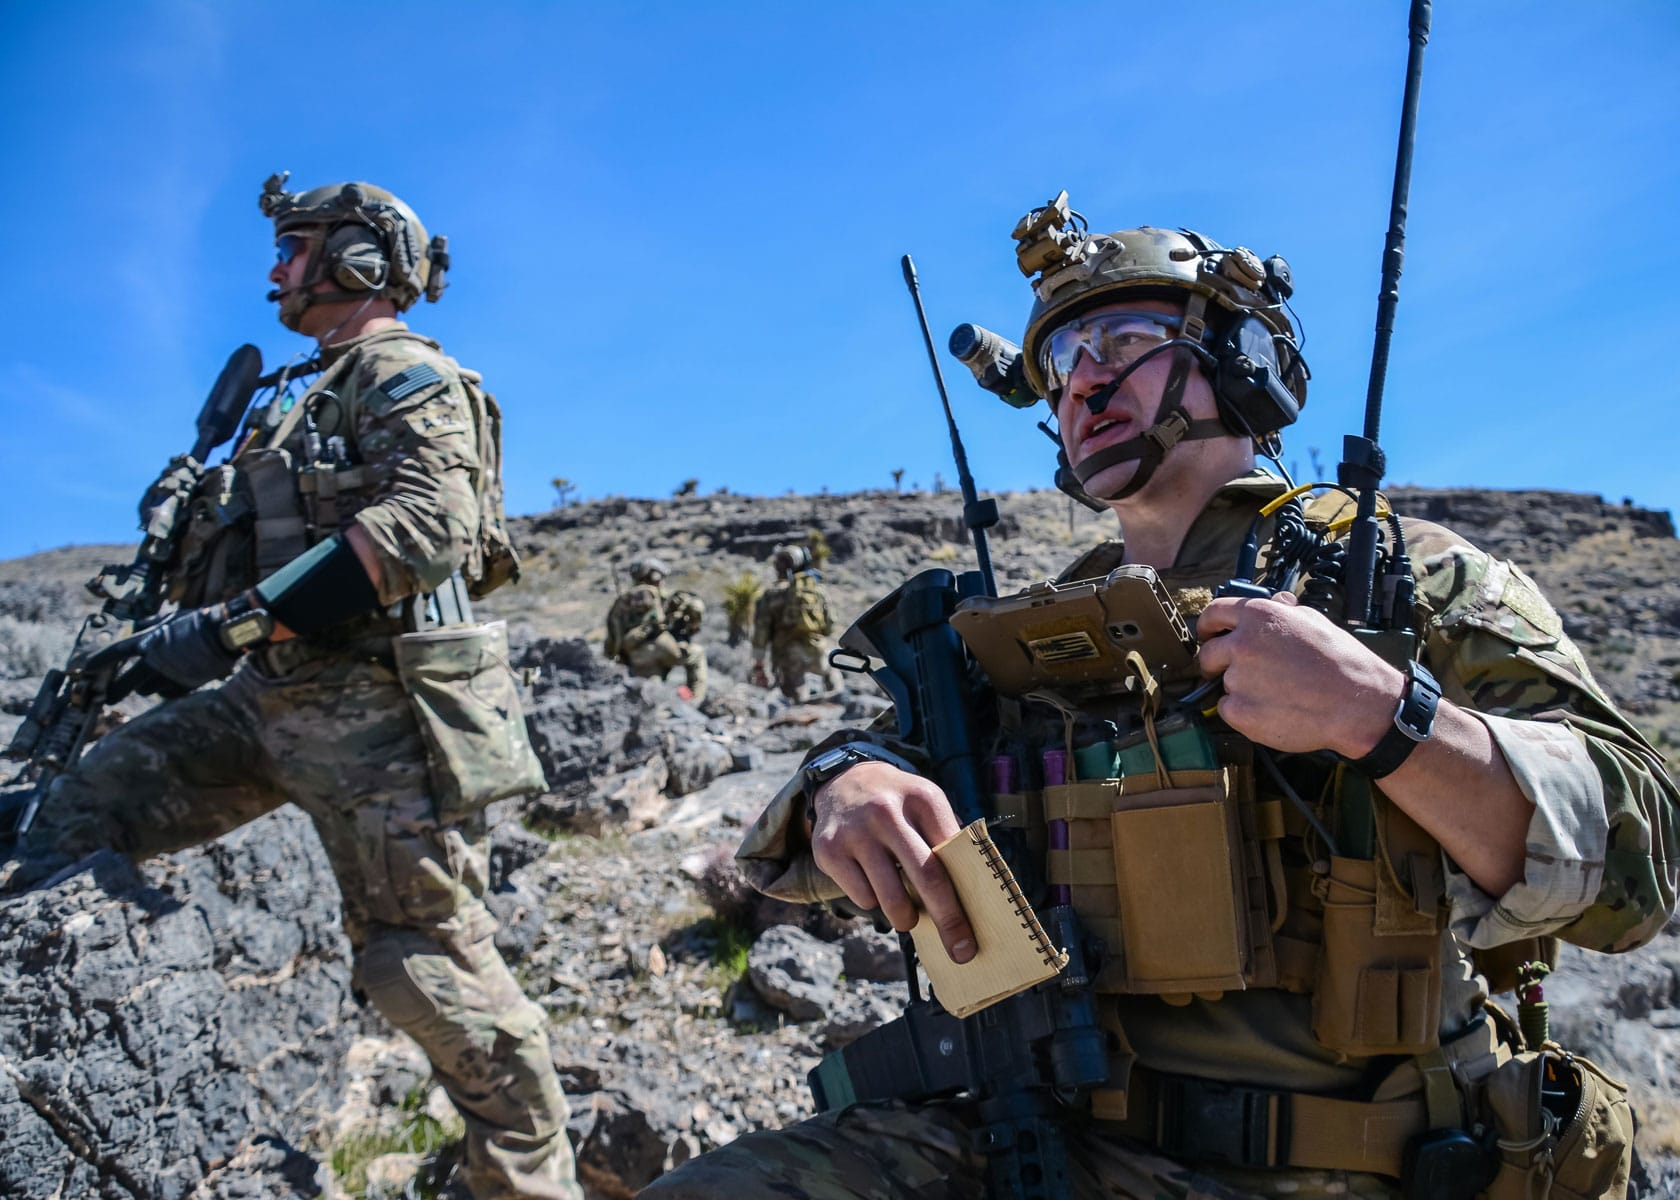 A U.S. Air Force Joint Terminal Attack Controller directs fire during a training exercise as a Soldier with 10th Special Forces Group (Airborne) provides overwatch security.